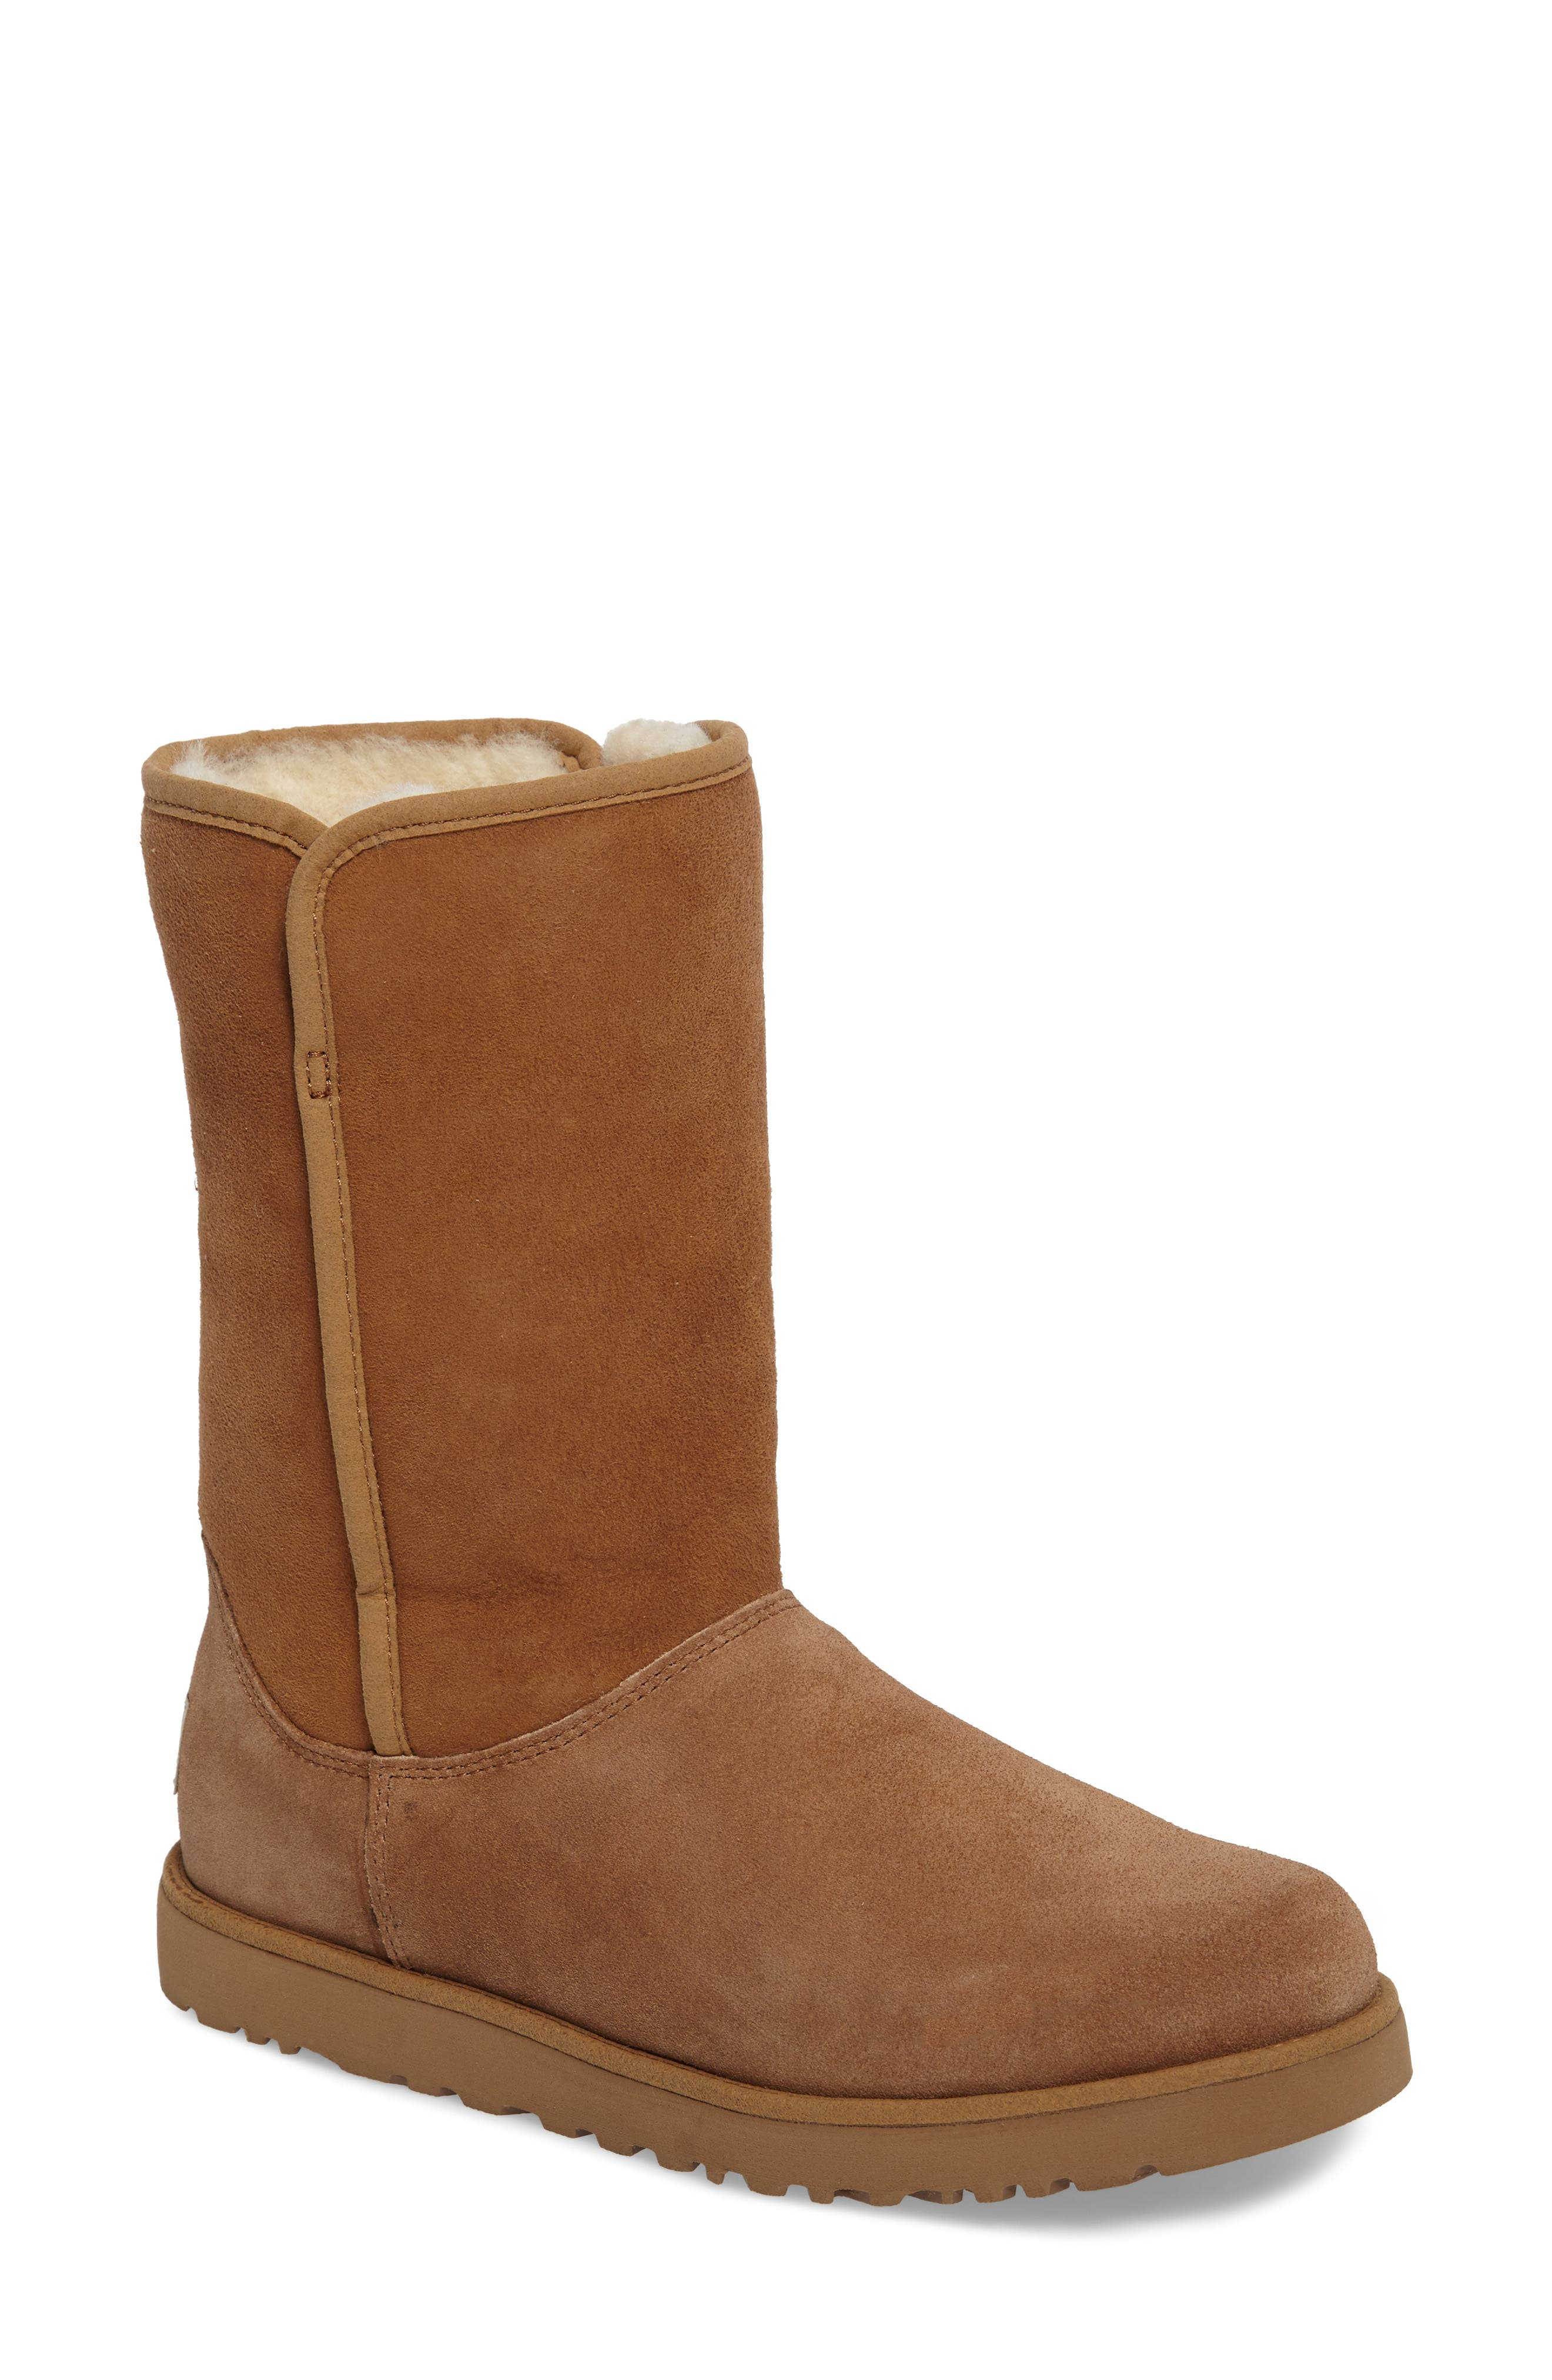 Alternate Image 1 Selected - UGG® 'Michelle' Boot (Women)